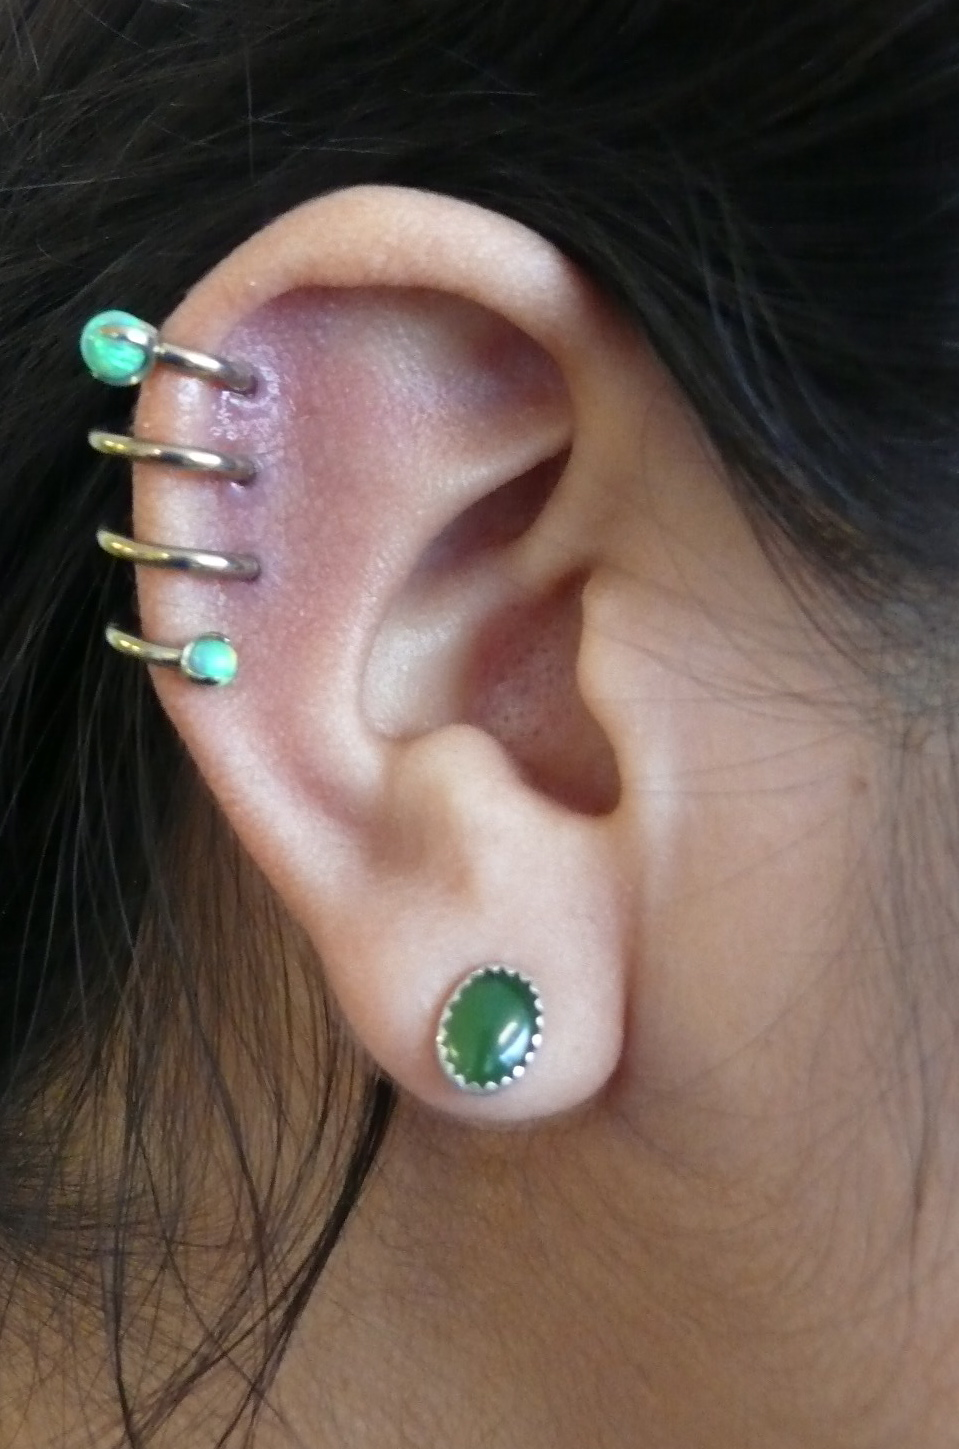 Dual Lobe Piercing With Tragus And Spiral Piercings Ear Piercing Jewelry